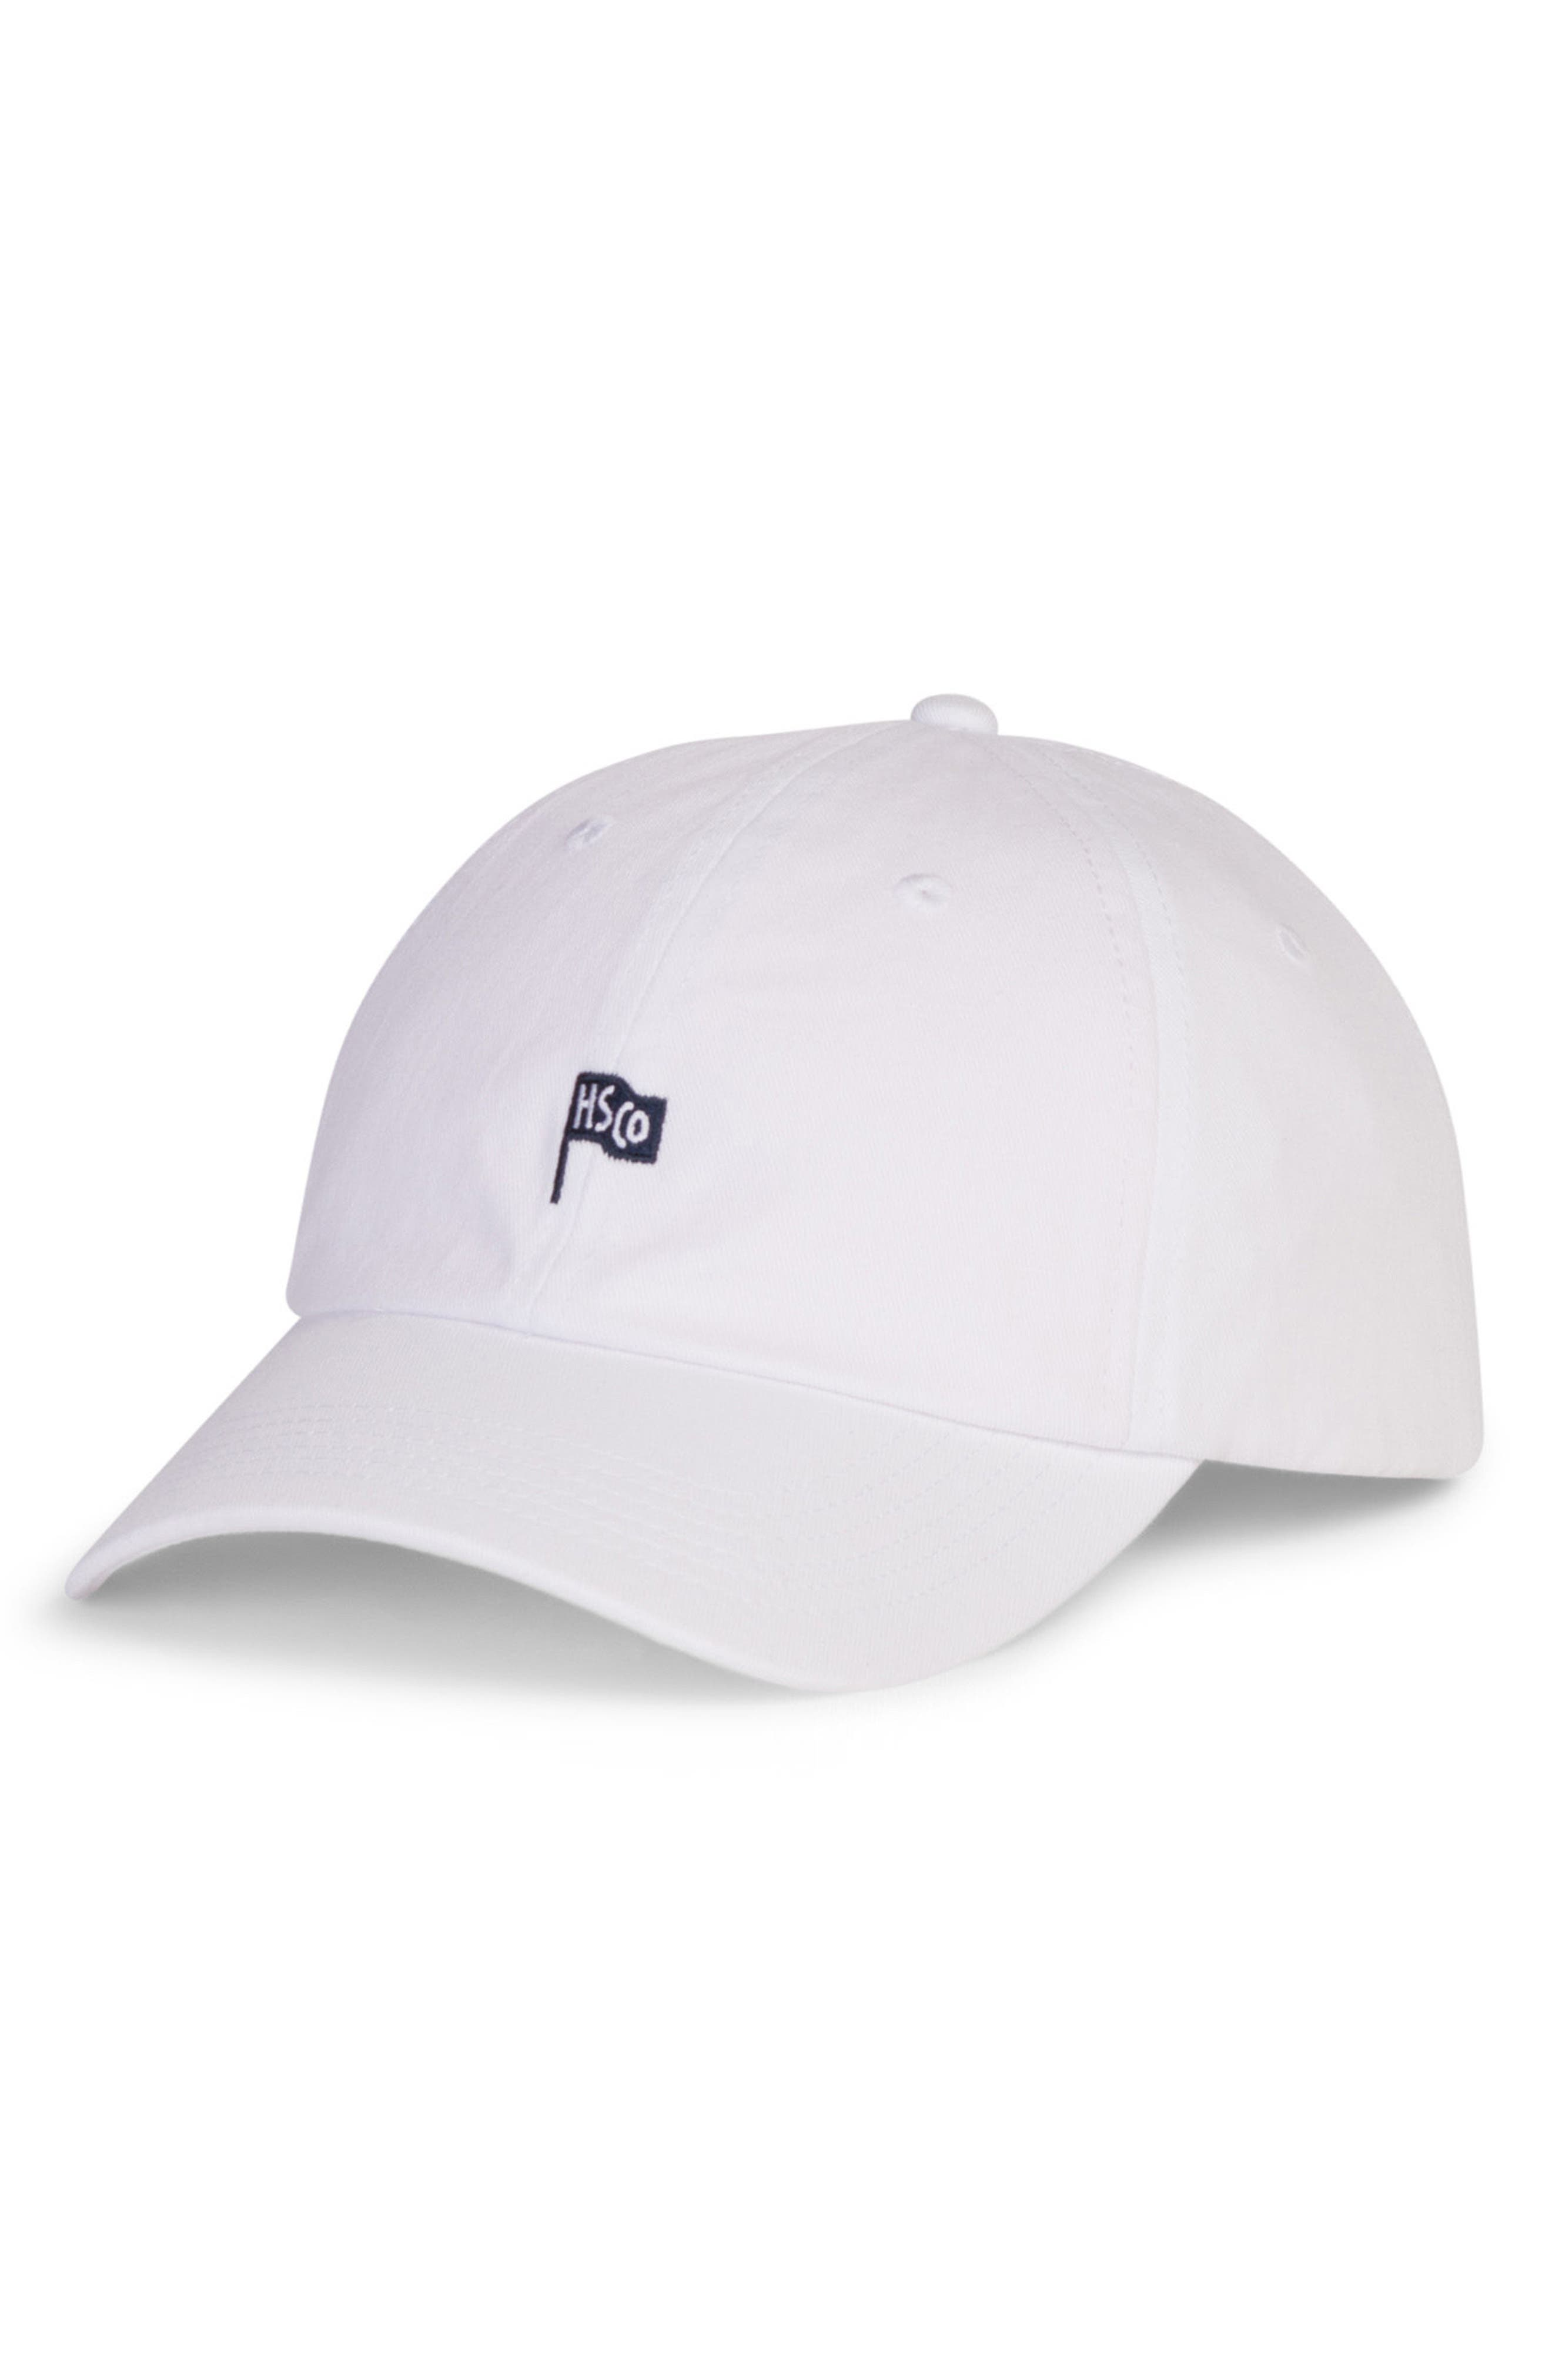 Sylas Baseball Cap,                             Main thumbnail 1, color,                             105